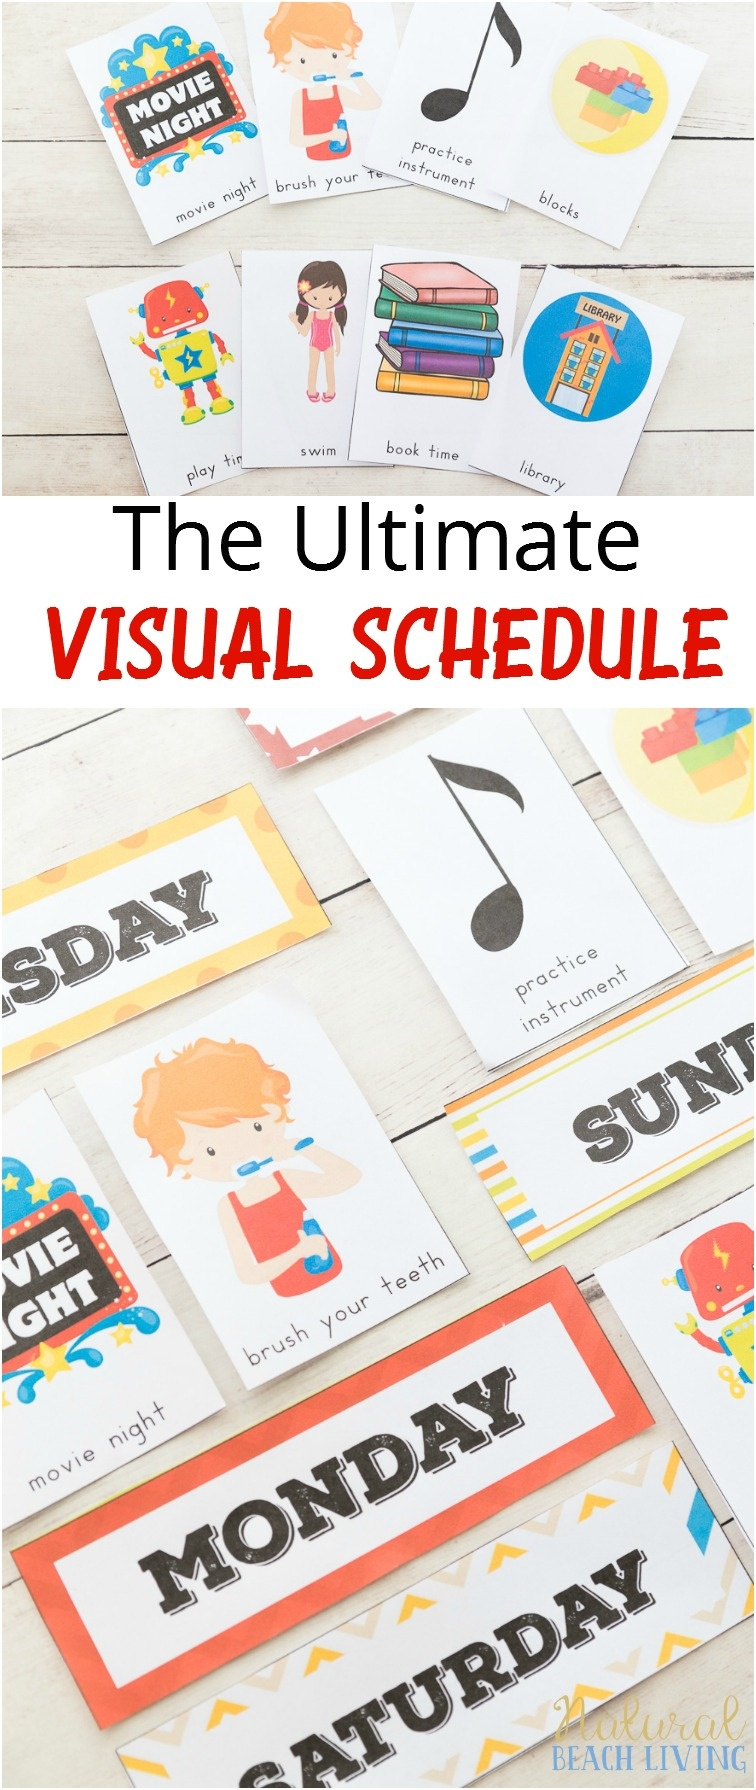 Daily Visual Schedule For Kids Free Printable - Natural Beach Living - Free Printable Schedule Cards For Preschool